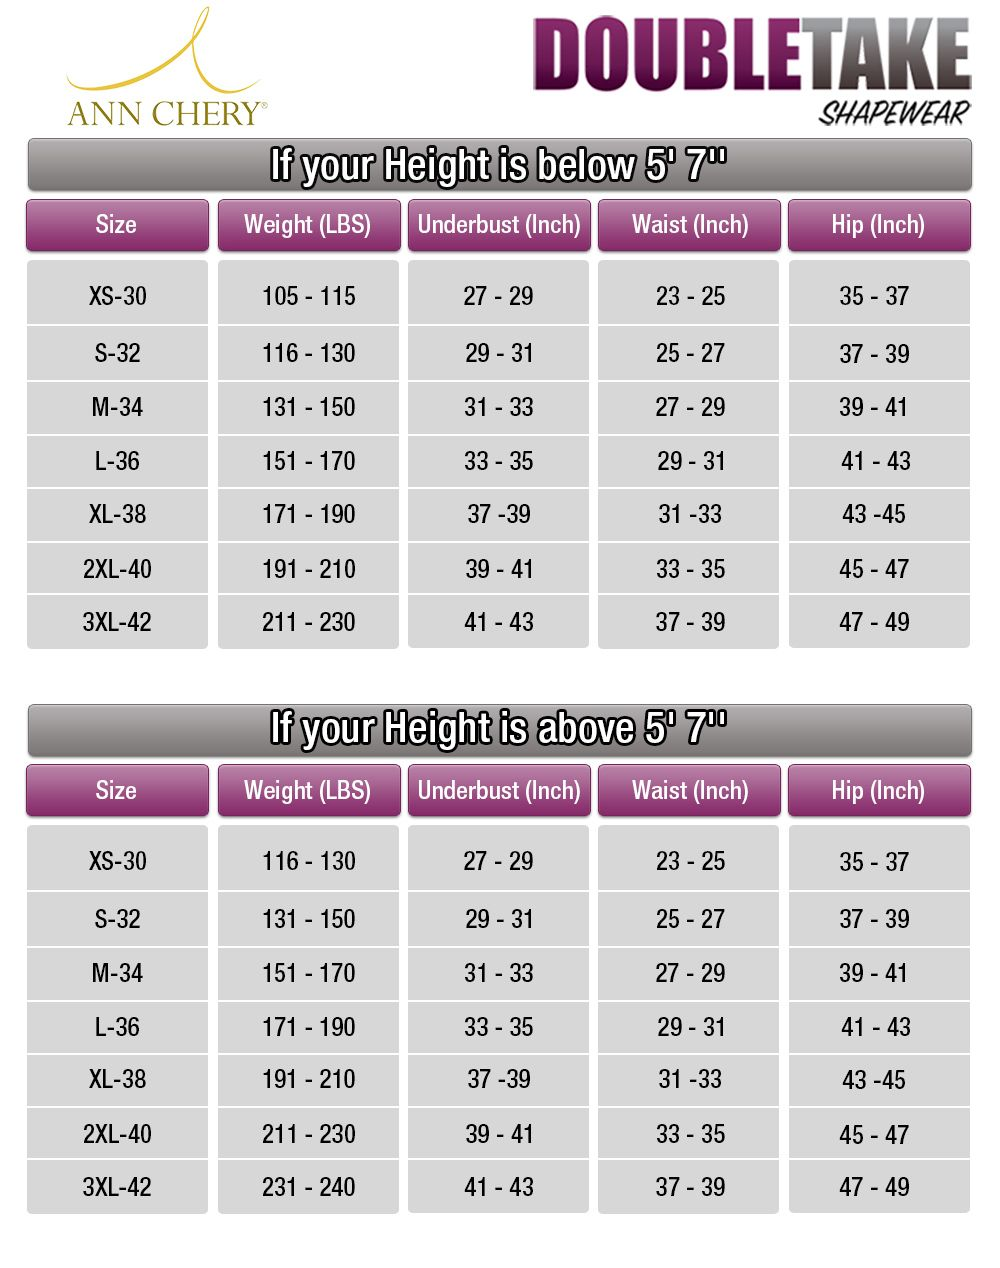 Ann chery waist cincher workout corset shapewear official size chart guide also rh pinterest